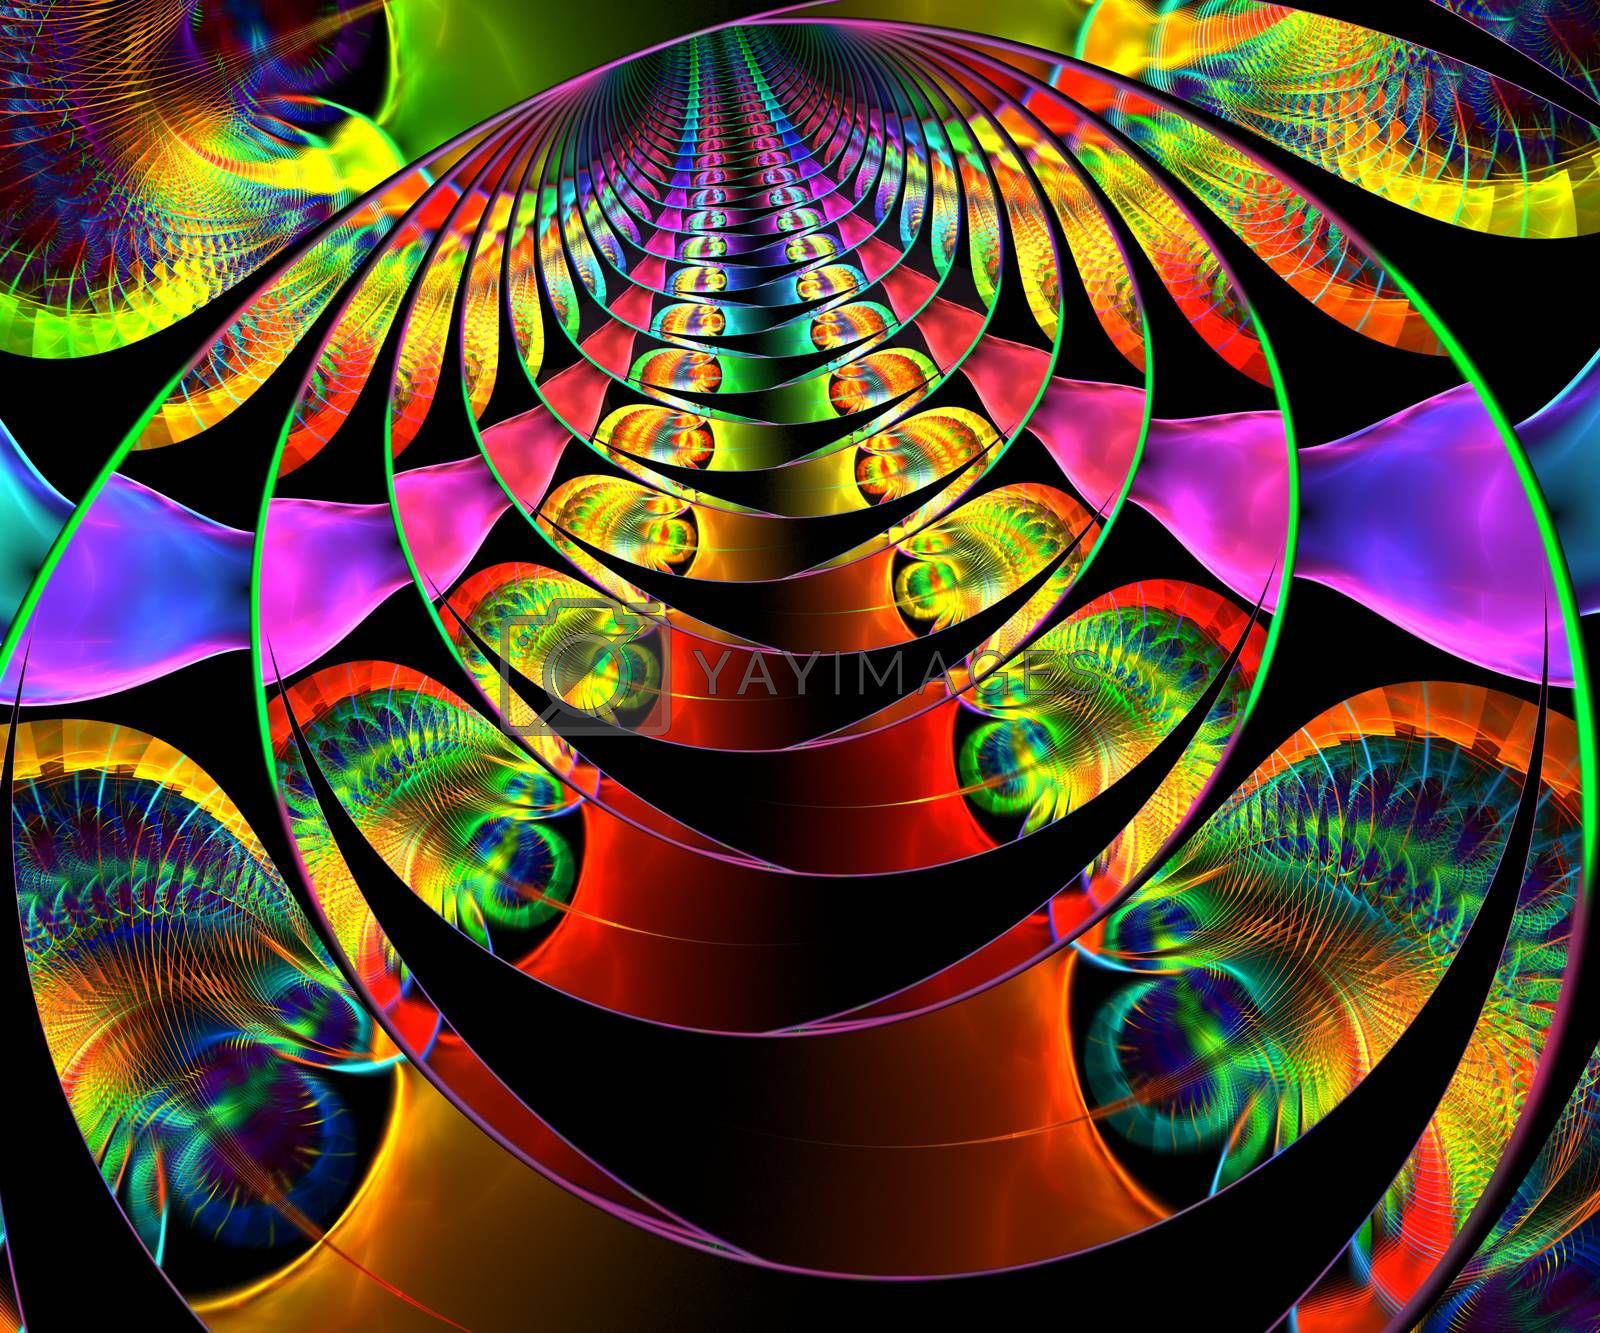 Computer generated abstract colorful fractal artwork for creative art,design and entertainment